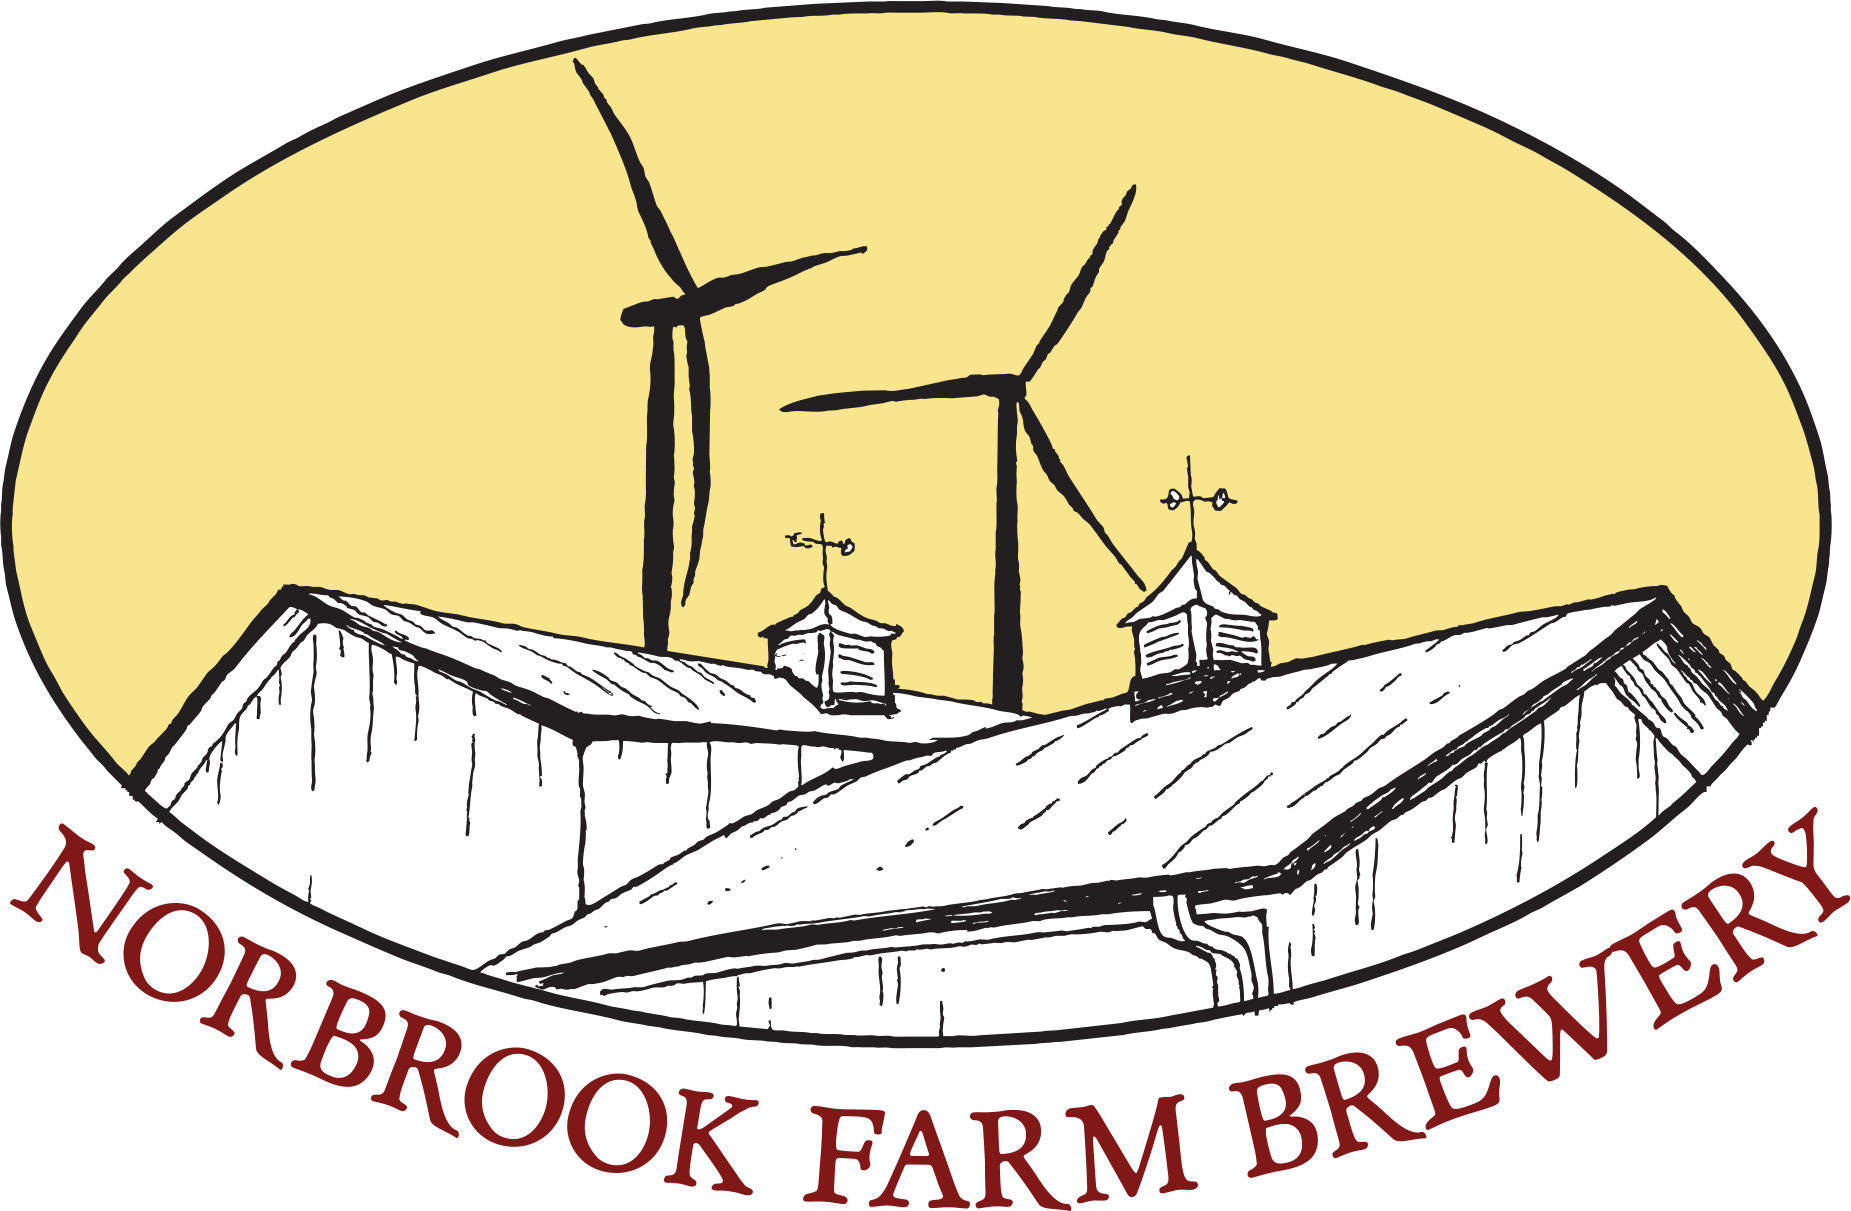 Norbrook Farm Brewery